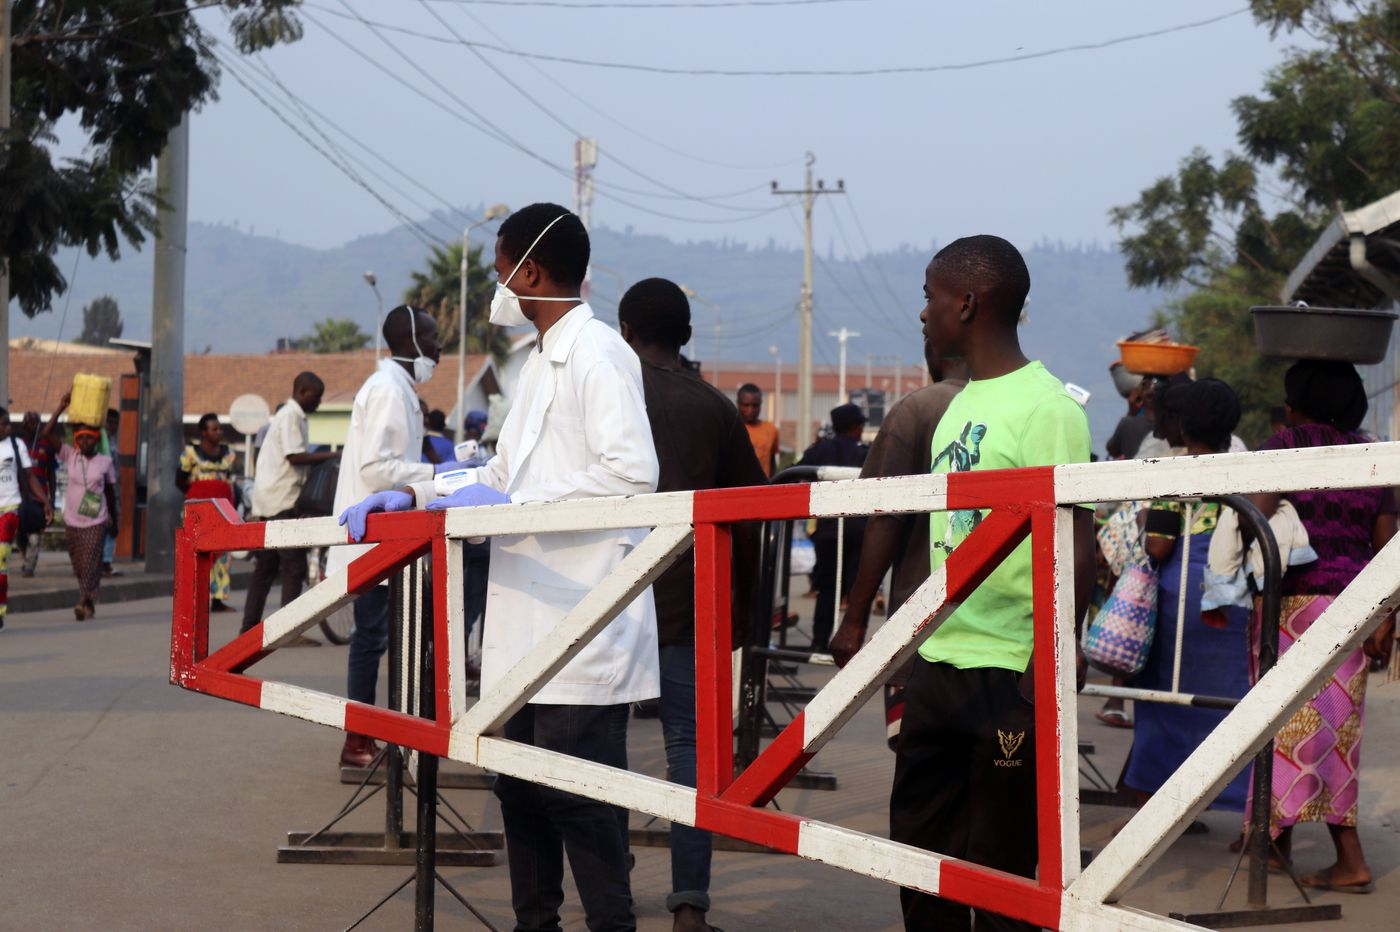 Ebola Drug Shows Promising Results in Heart of Congo Outbreak